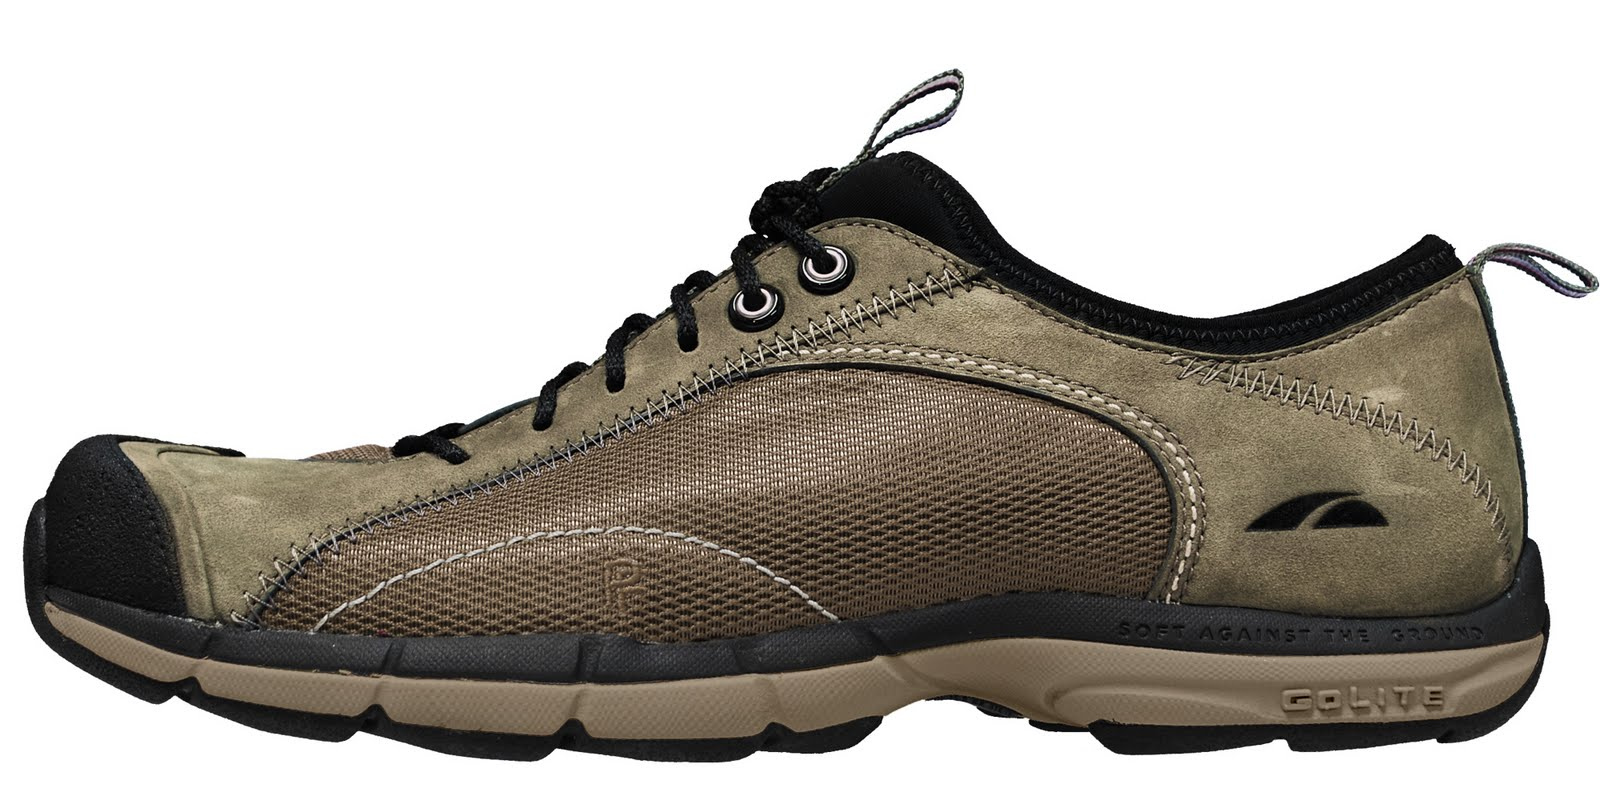 Rugged Shoes For Women